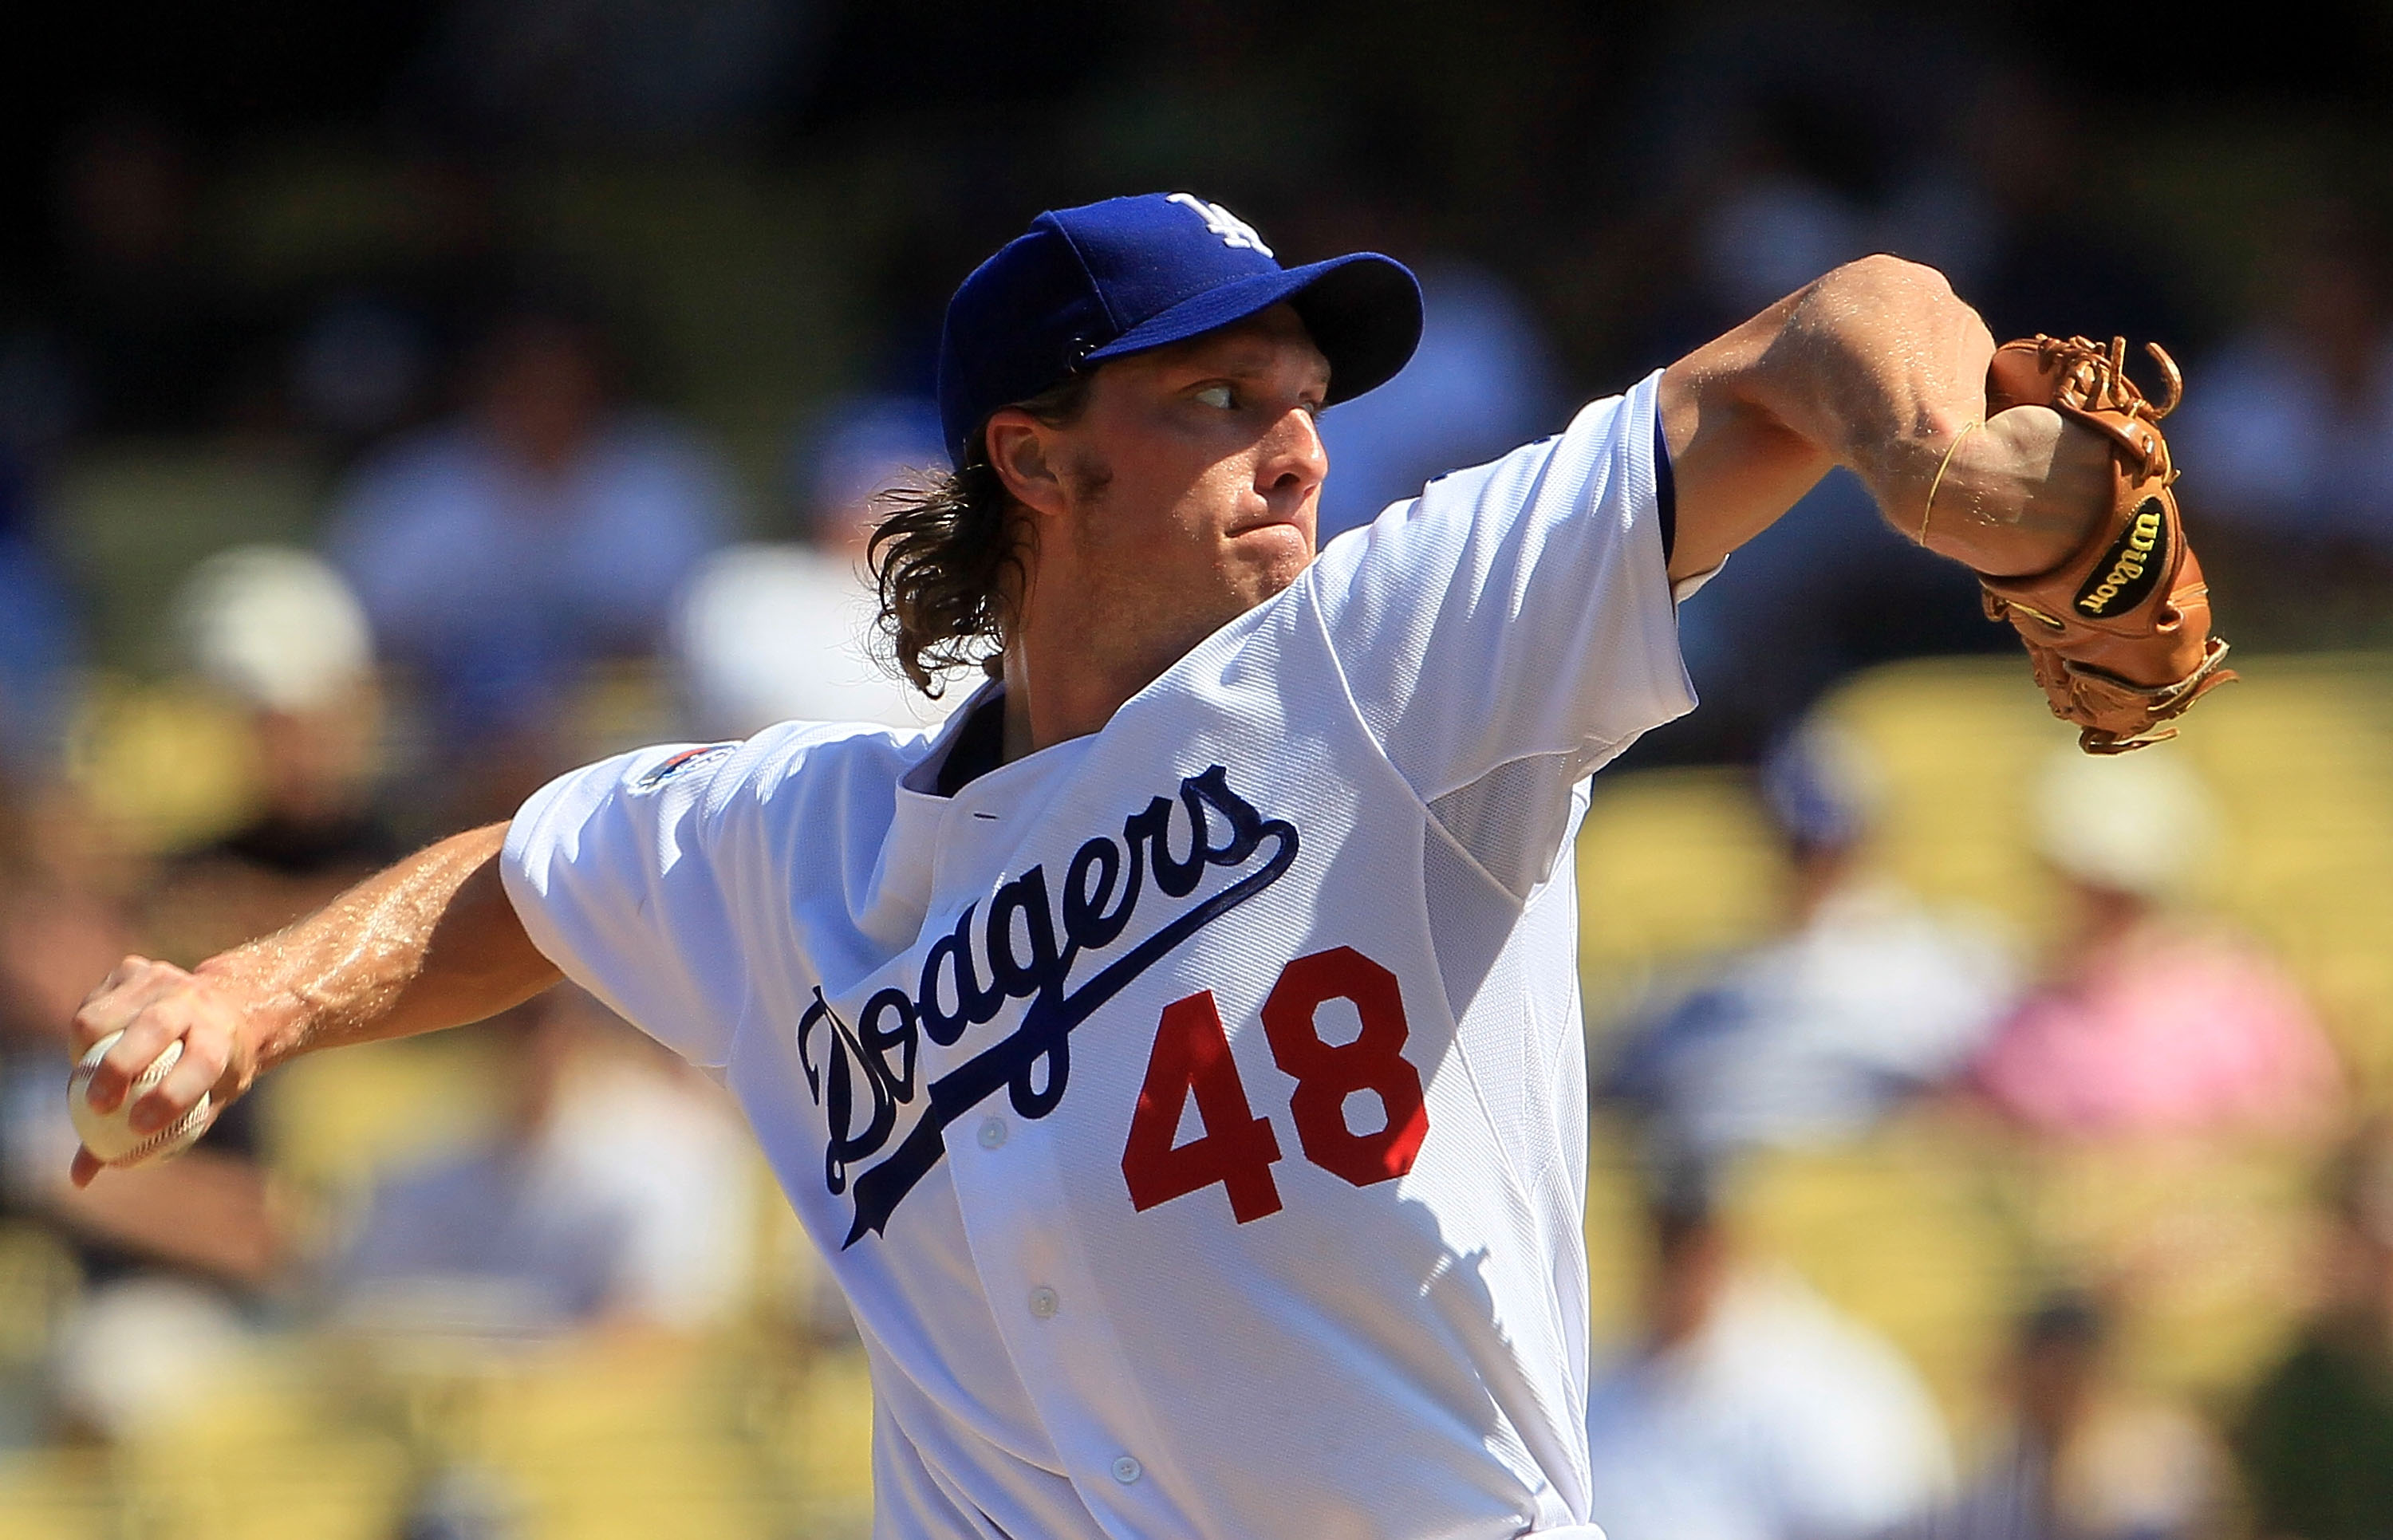 LOS ANGELES, CA - SEPTEMBER 18:  John Ely #48 of the Los Angeles Dodgers pitches against the Colorado Rockies in the game at Dodger Stadium on September 18, 2010 in Los Angeles, California.  (Photo by Jeff Gross/Getty Images)